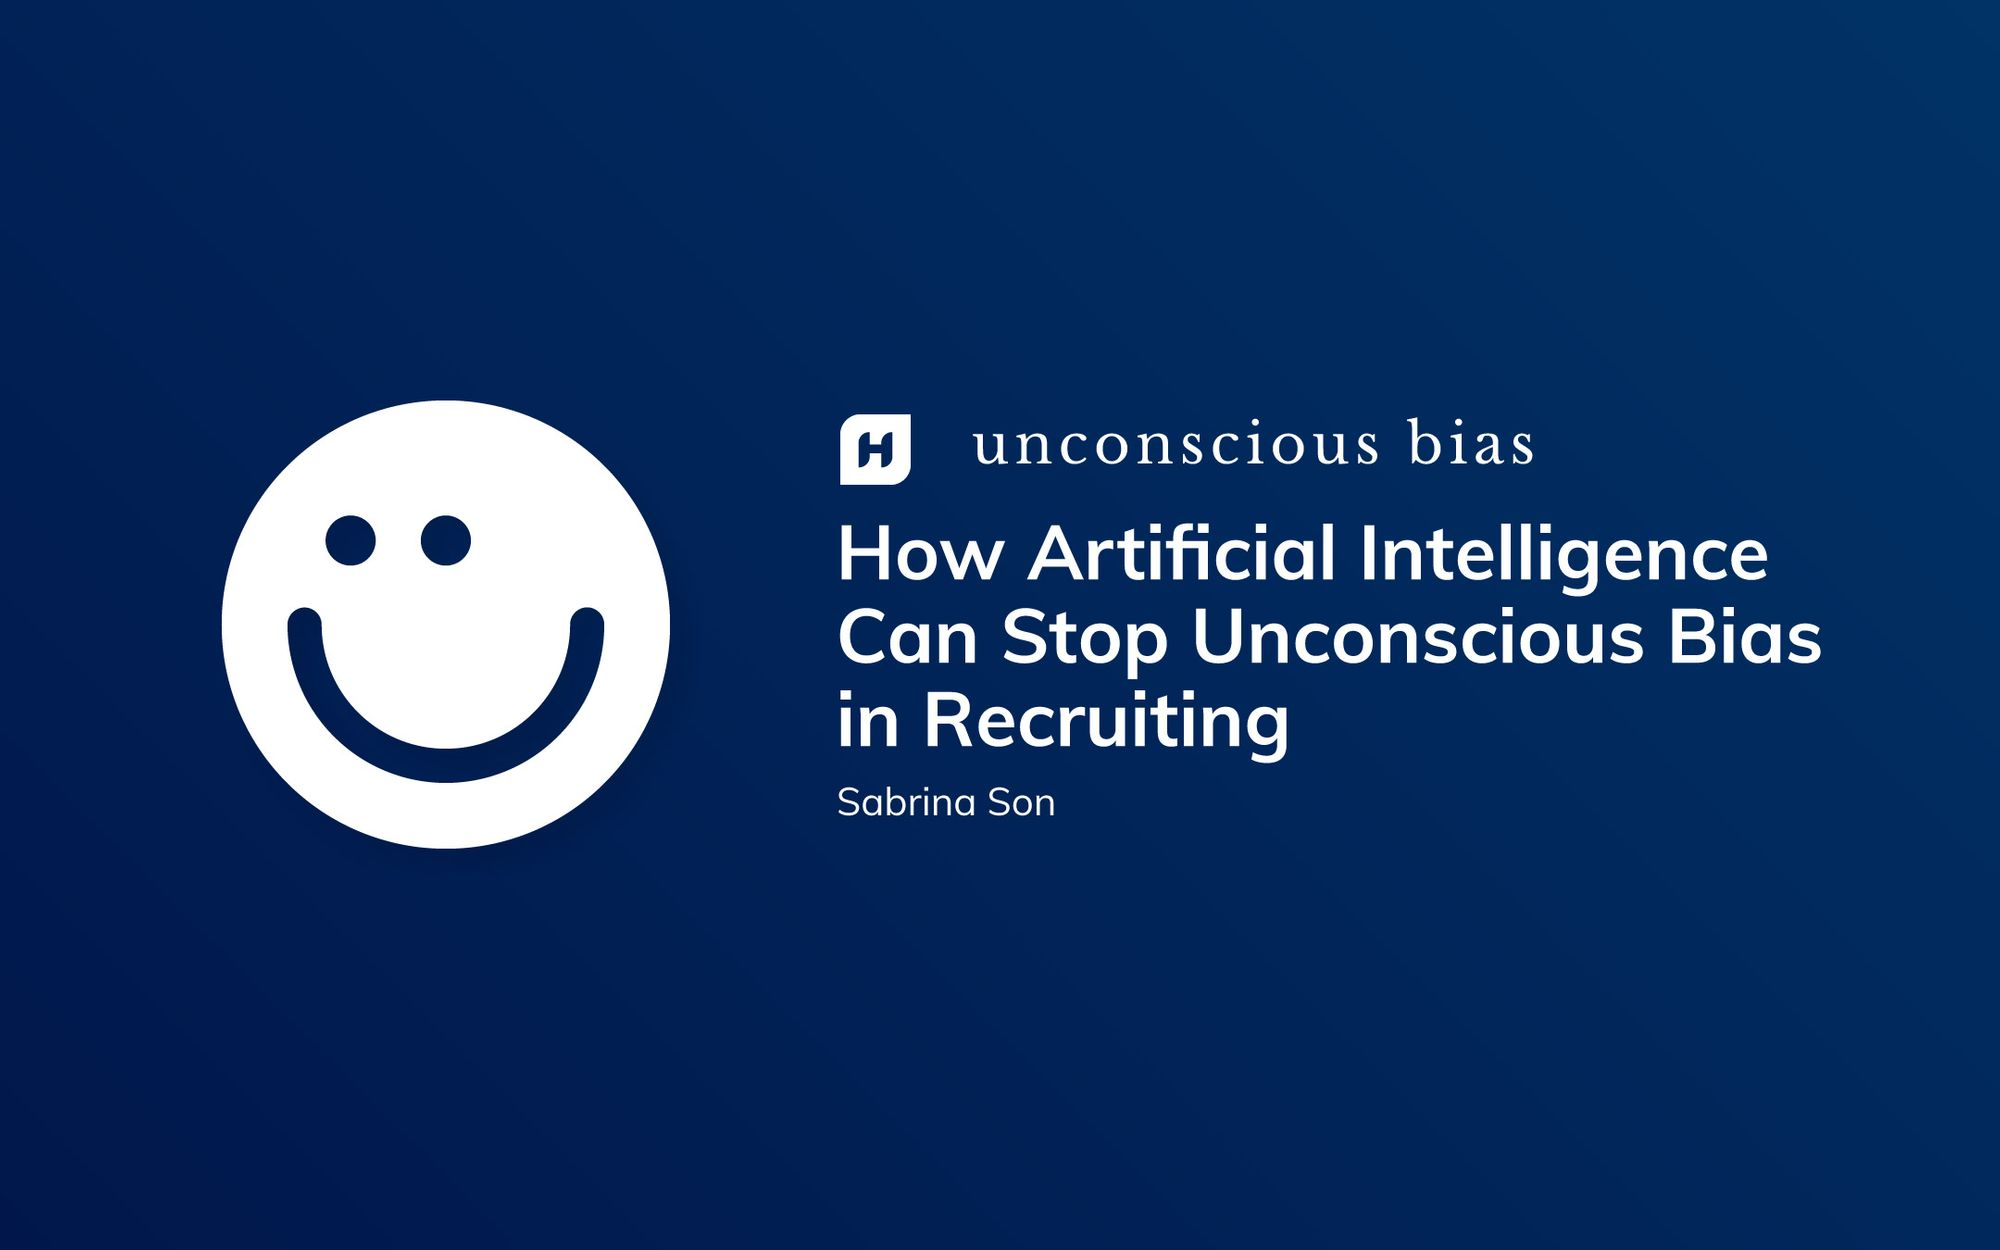 How Artificial Intelligence Can Stop Unconscious Bias in Recruiting